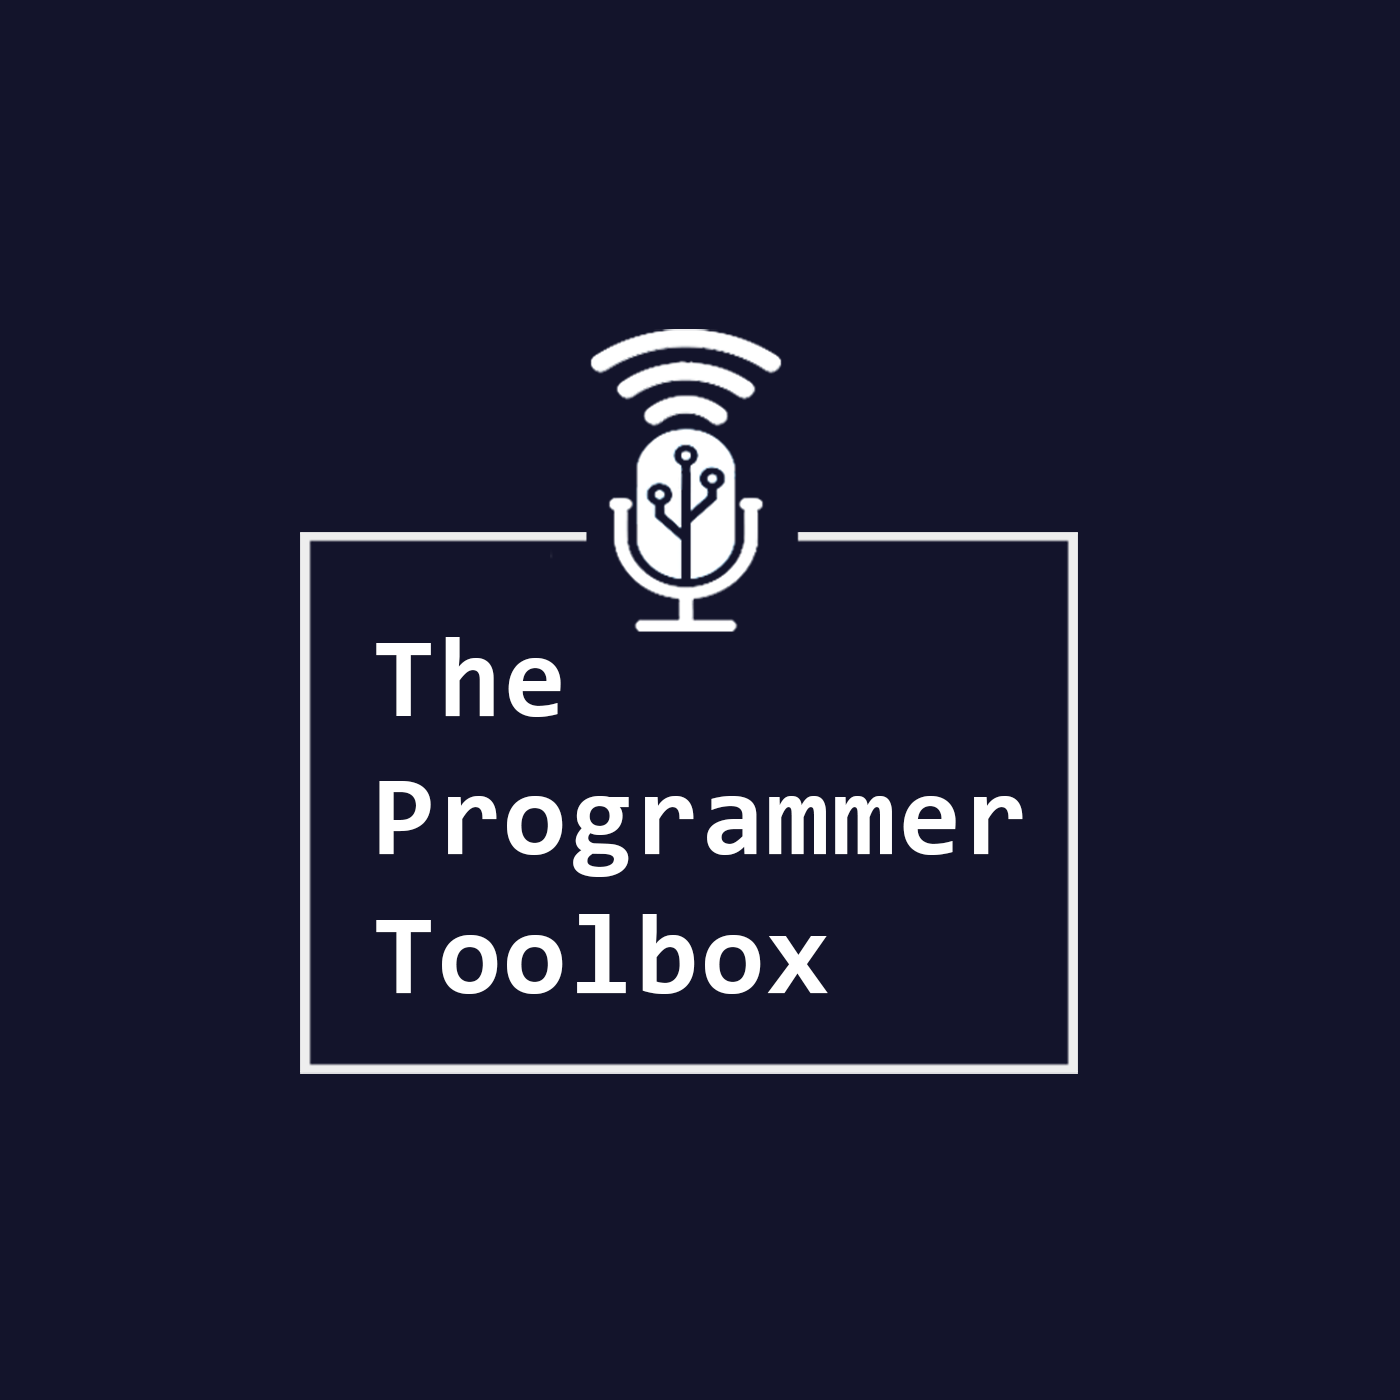 The Programmer Toolbox